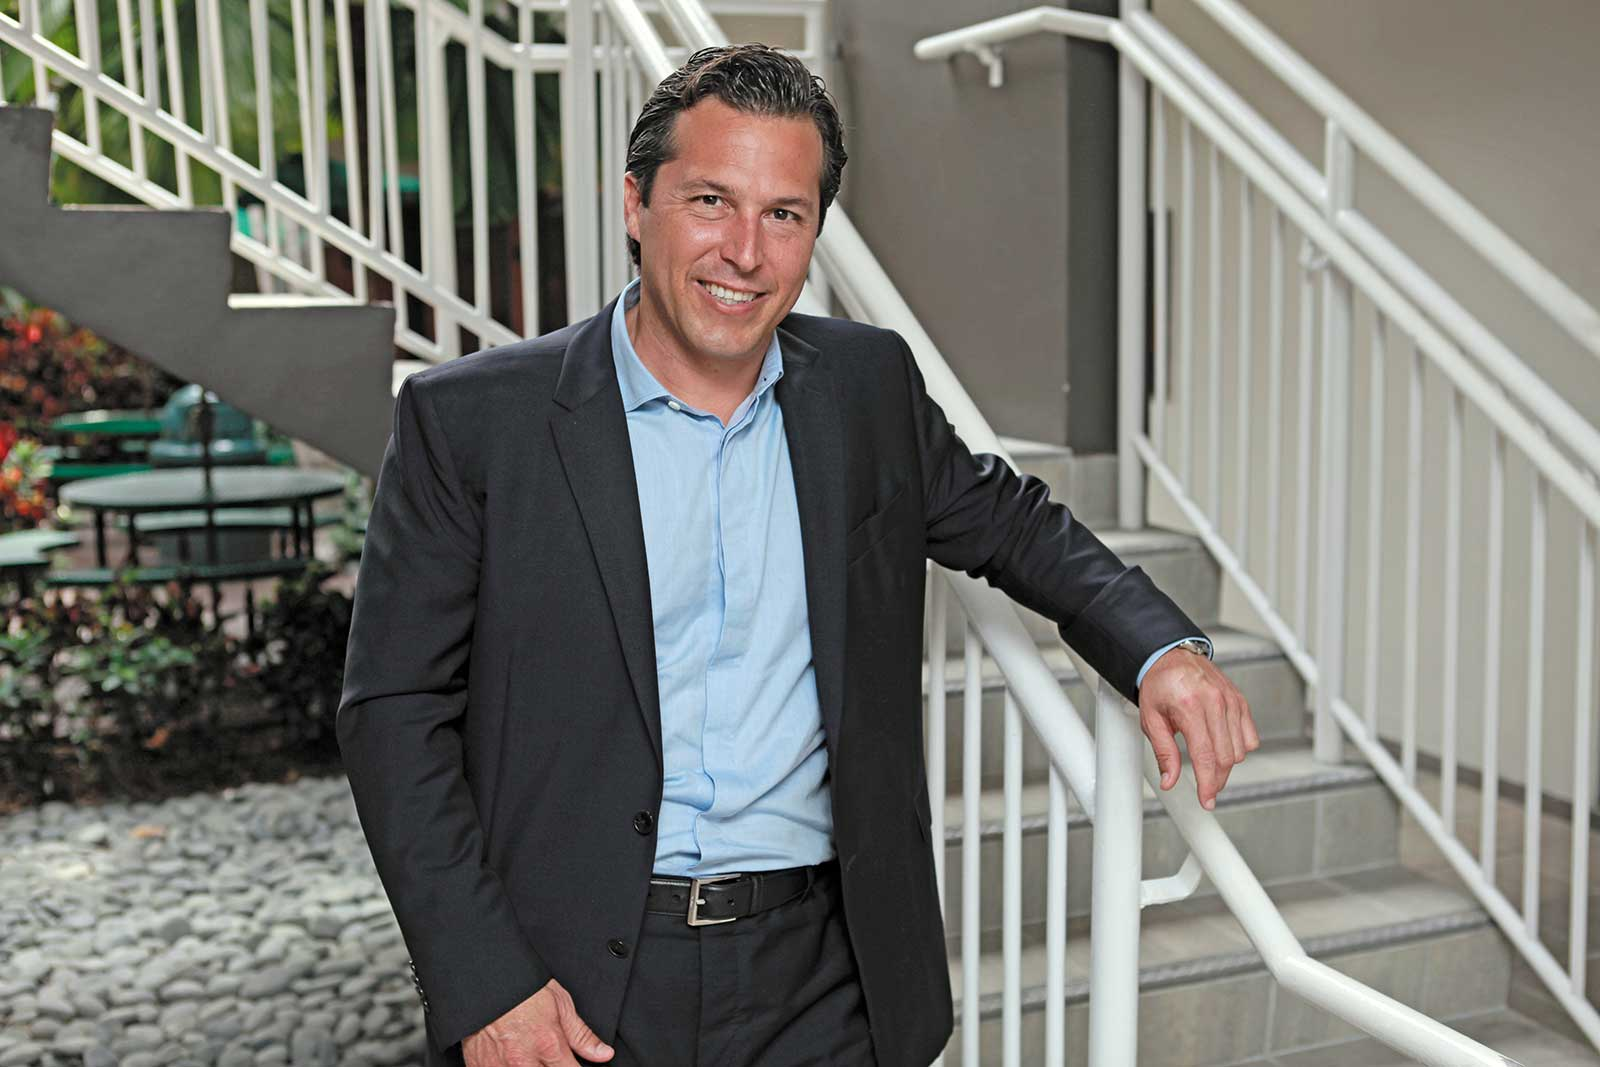 Martin Pinilla II: Realty investor give urban neighborhoods 'some love'